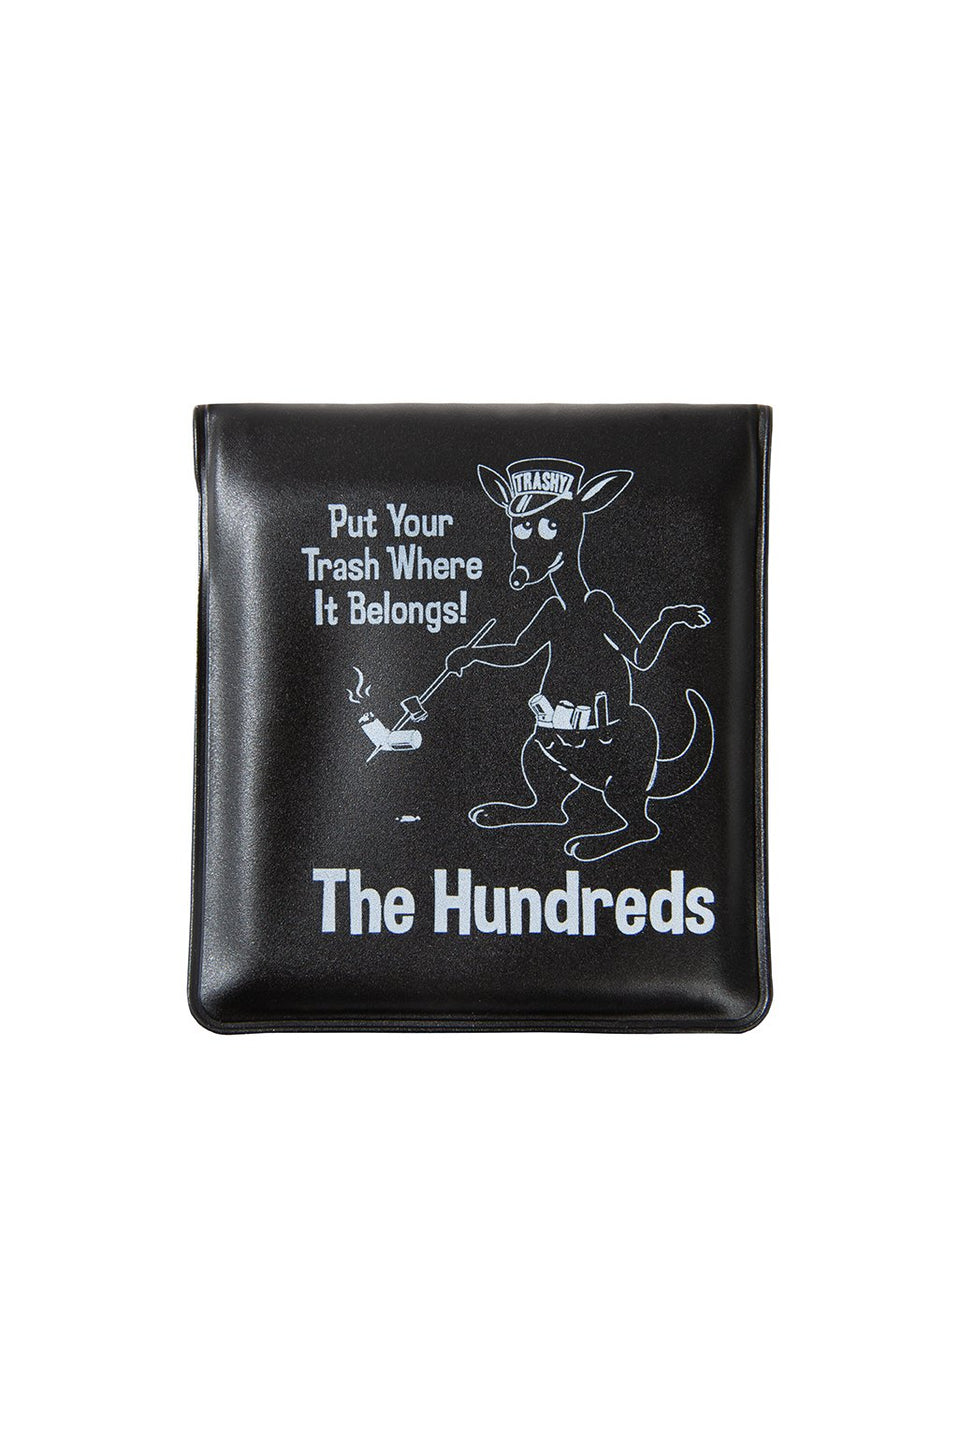 The Hundreds Trashy Portable Ash Tray ACCESSORIES Black